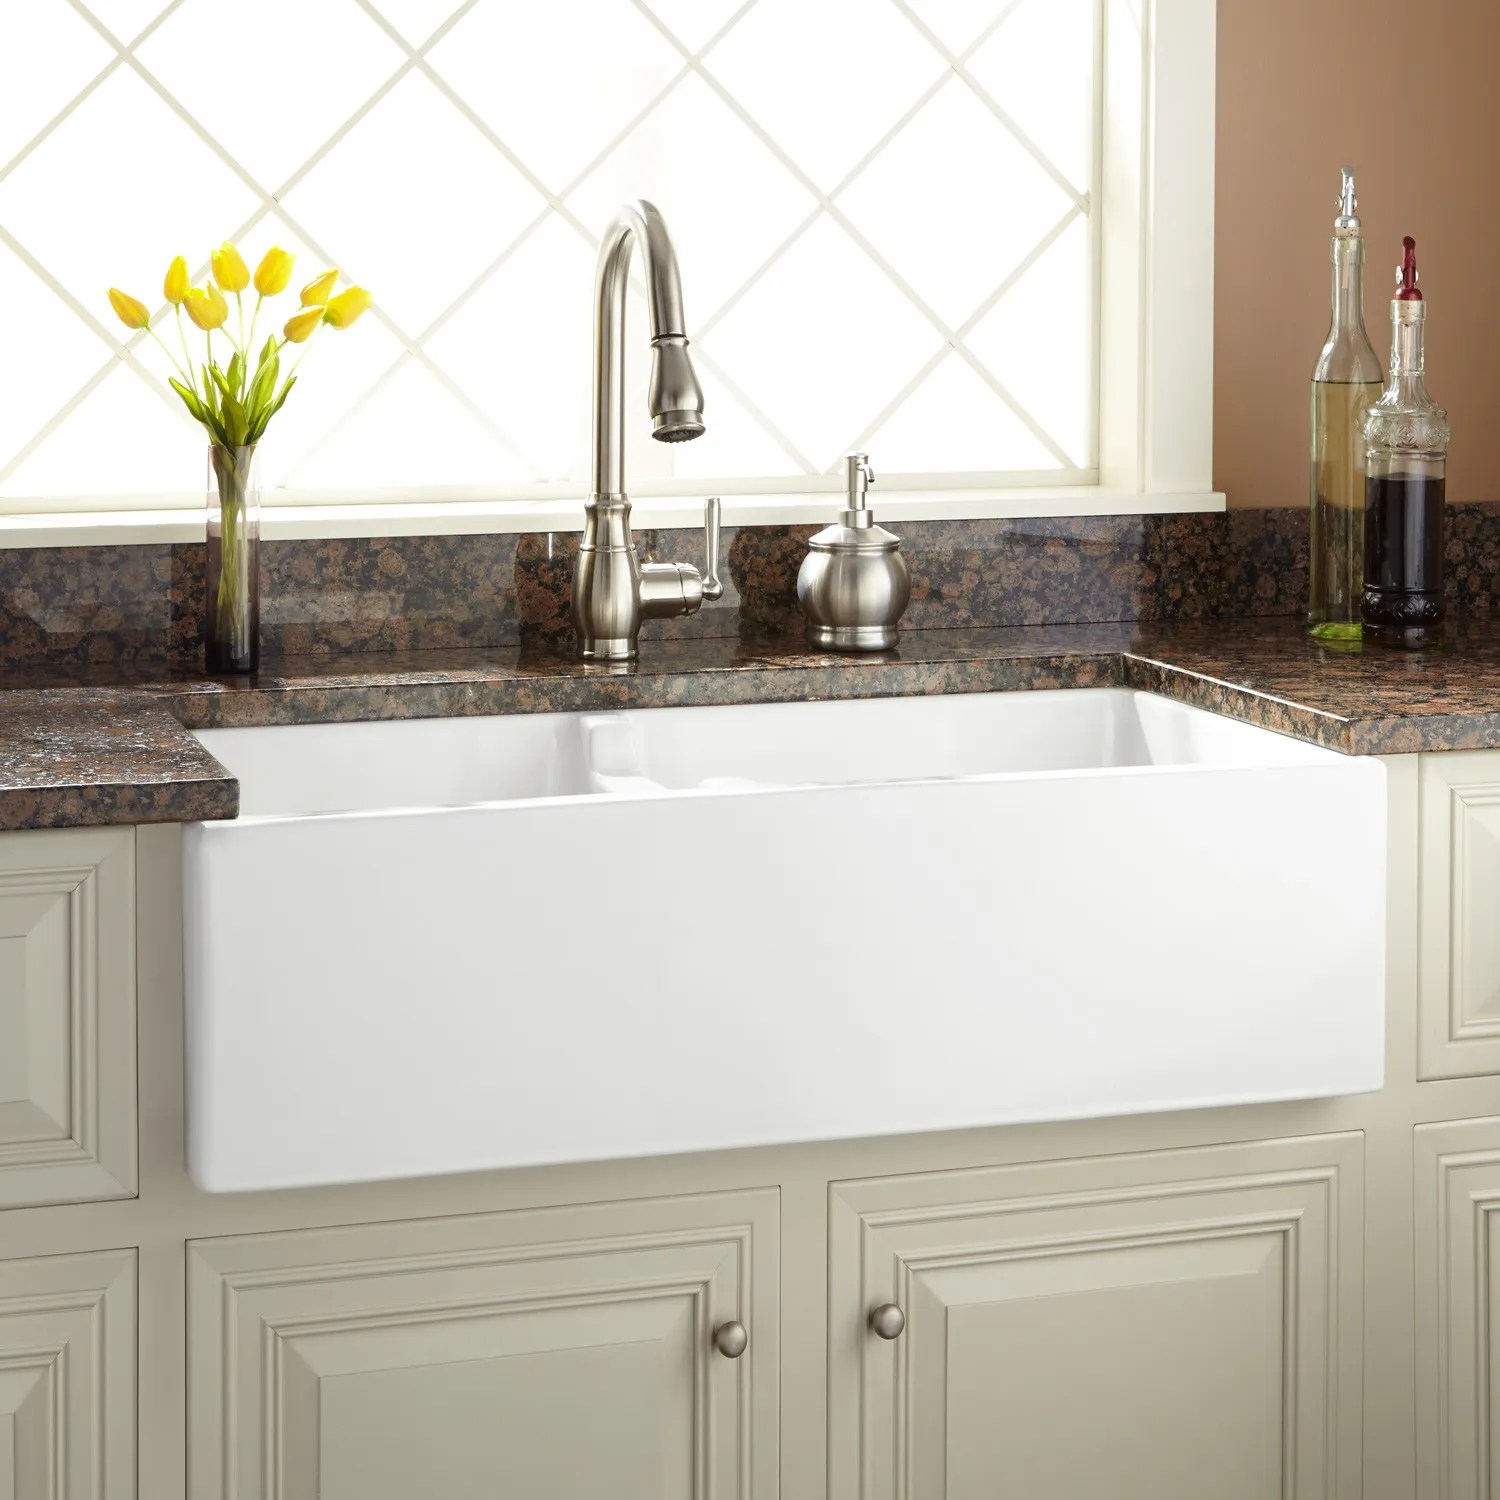 26 Inch Farmhouse Sink 36 Quot Risinger 60 40 Offset Bowl Fireclay Farmhouse Sink